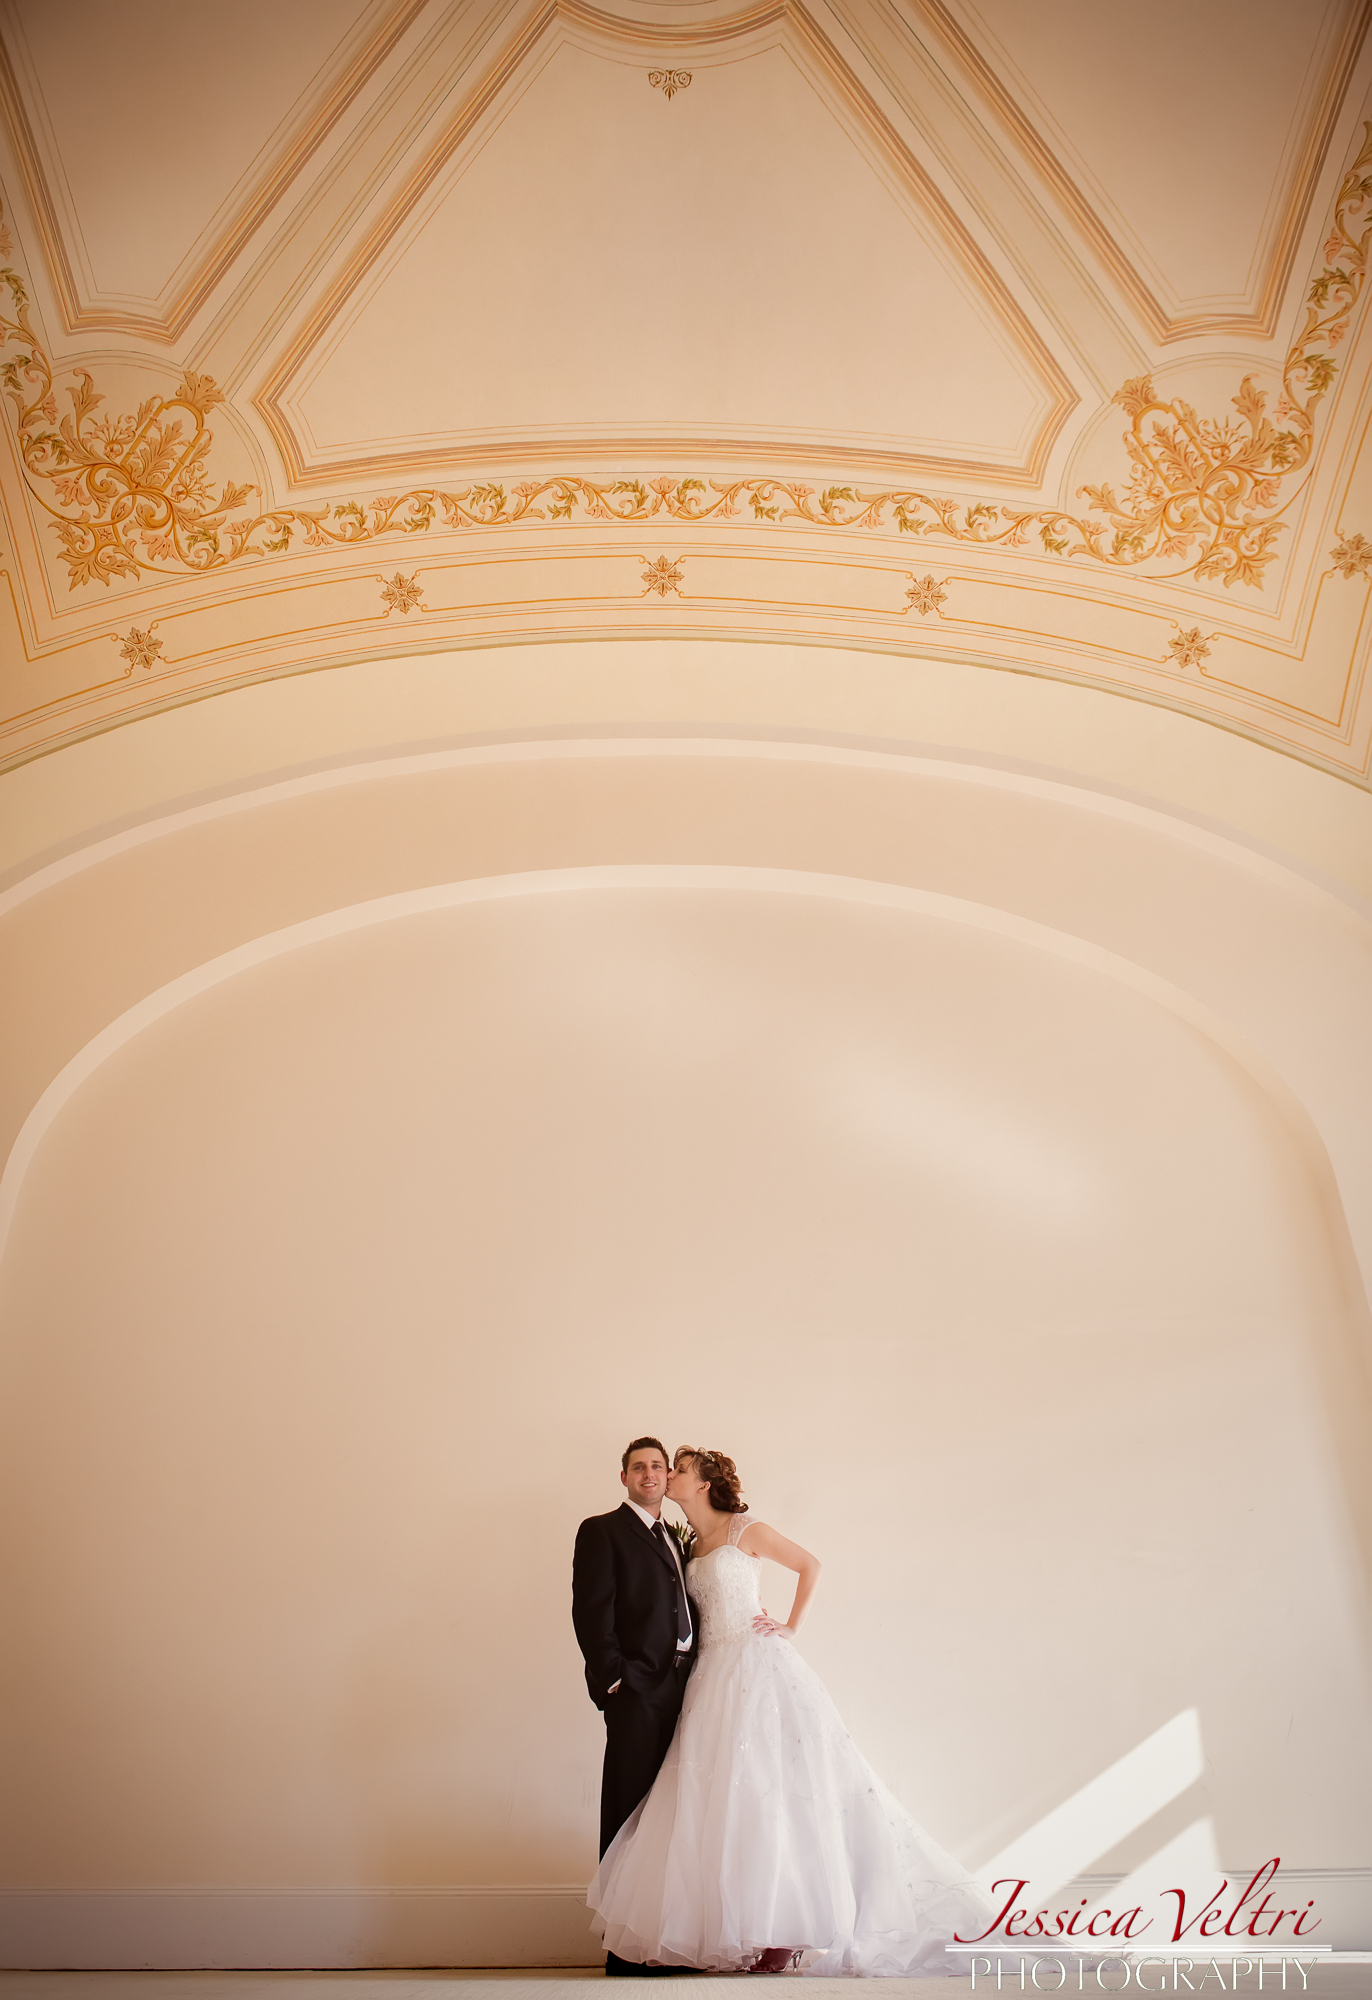 Washington D.C. Wedding Photography Jessica Veltri-11